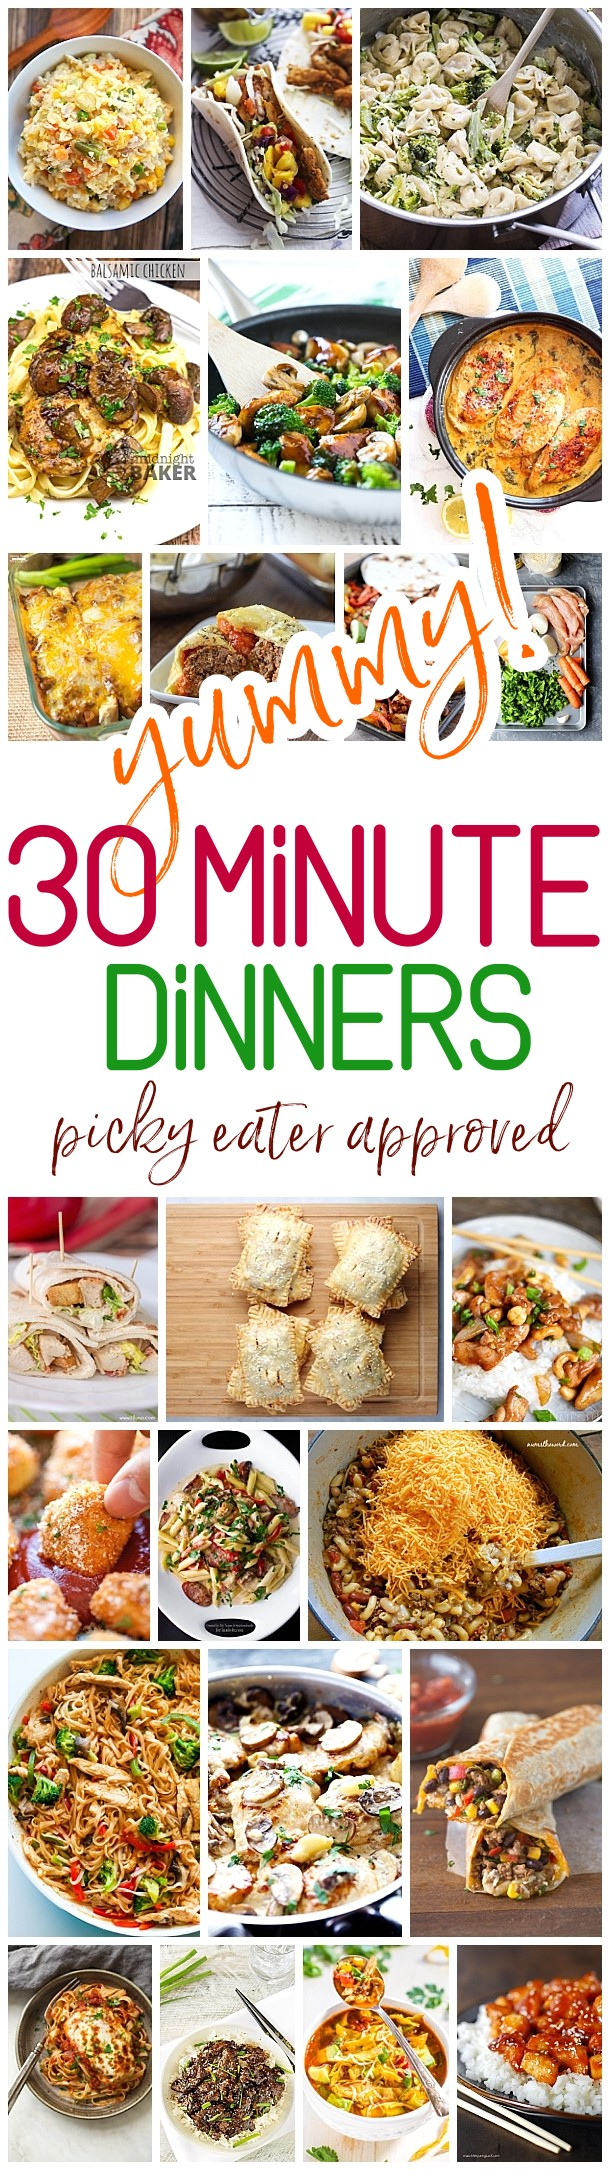 Yummy 30 Minute Family Dinners Recipes - Easy, Quick and Delicious Family Friendly Lunch and Dinner Menu Fast Ideas - Dreaming in DIY